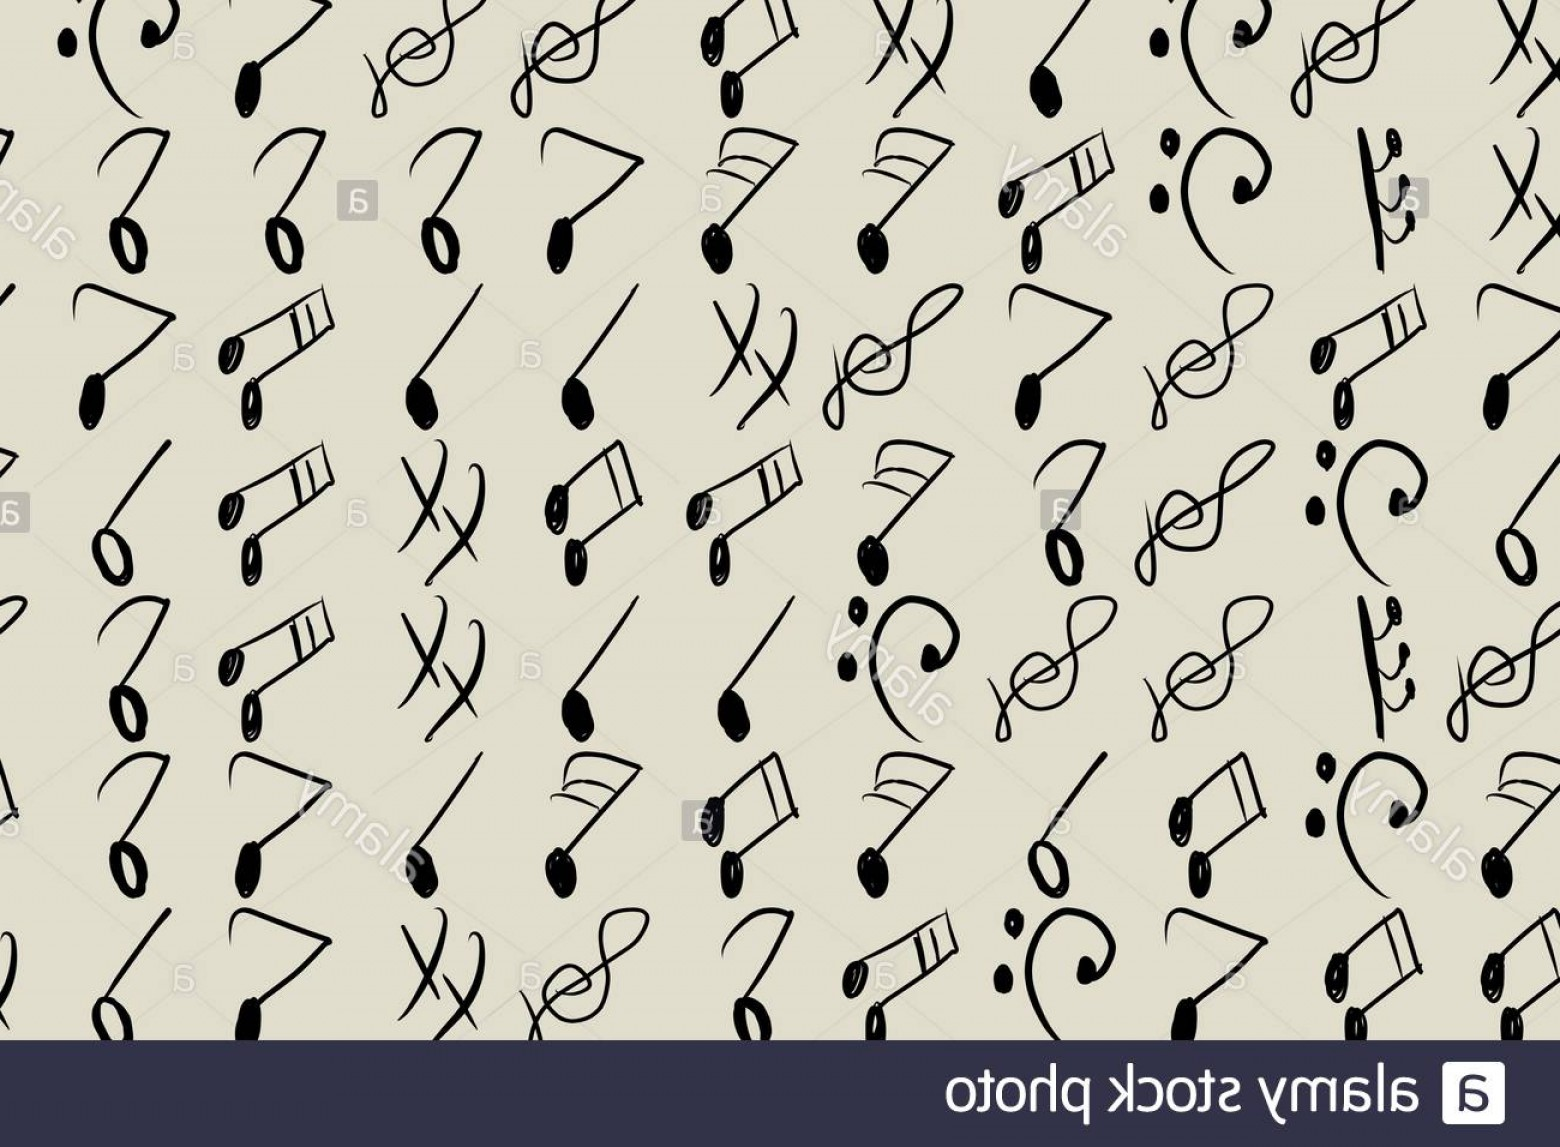 Musical Vector Artwork: Abstract Musical Note Illustrations Backgroundtone Chromatic Scale Vector Artwork Image